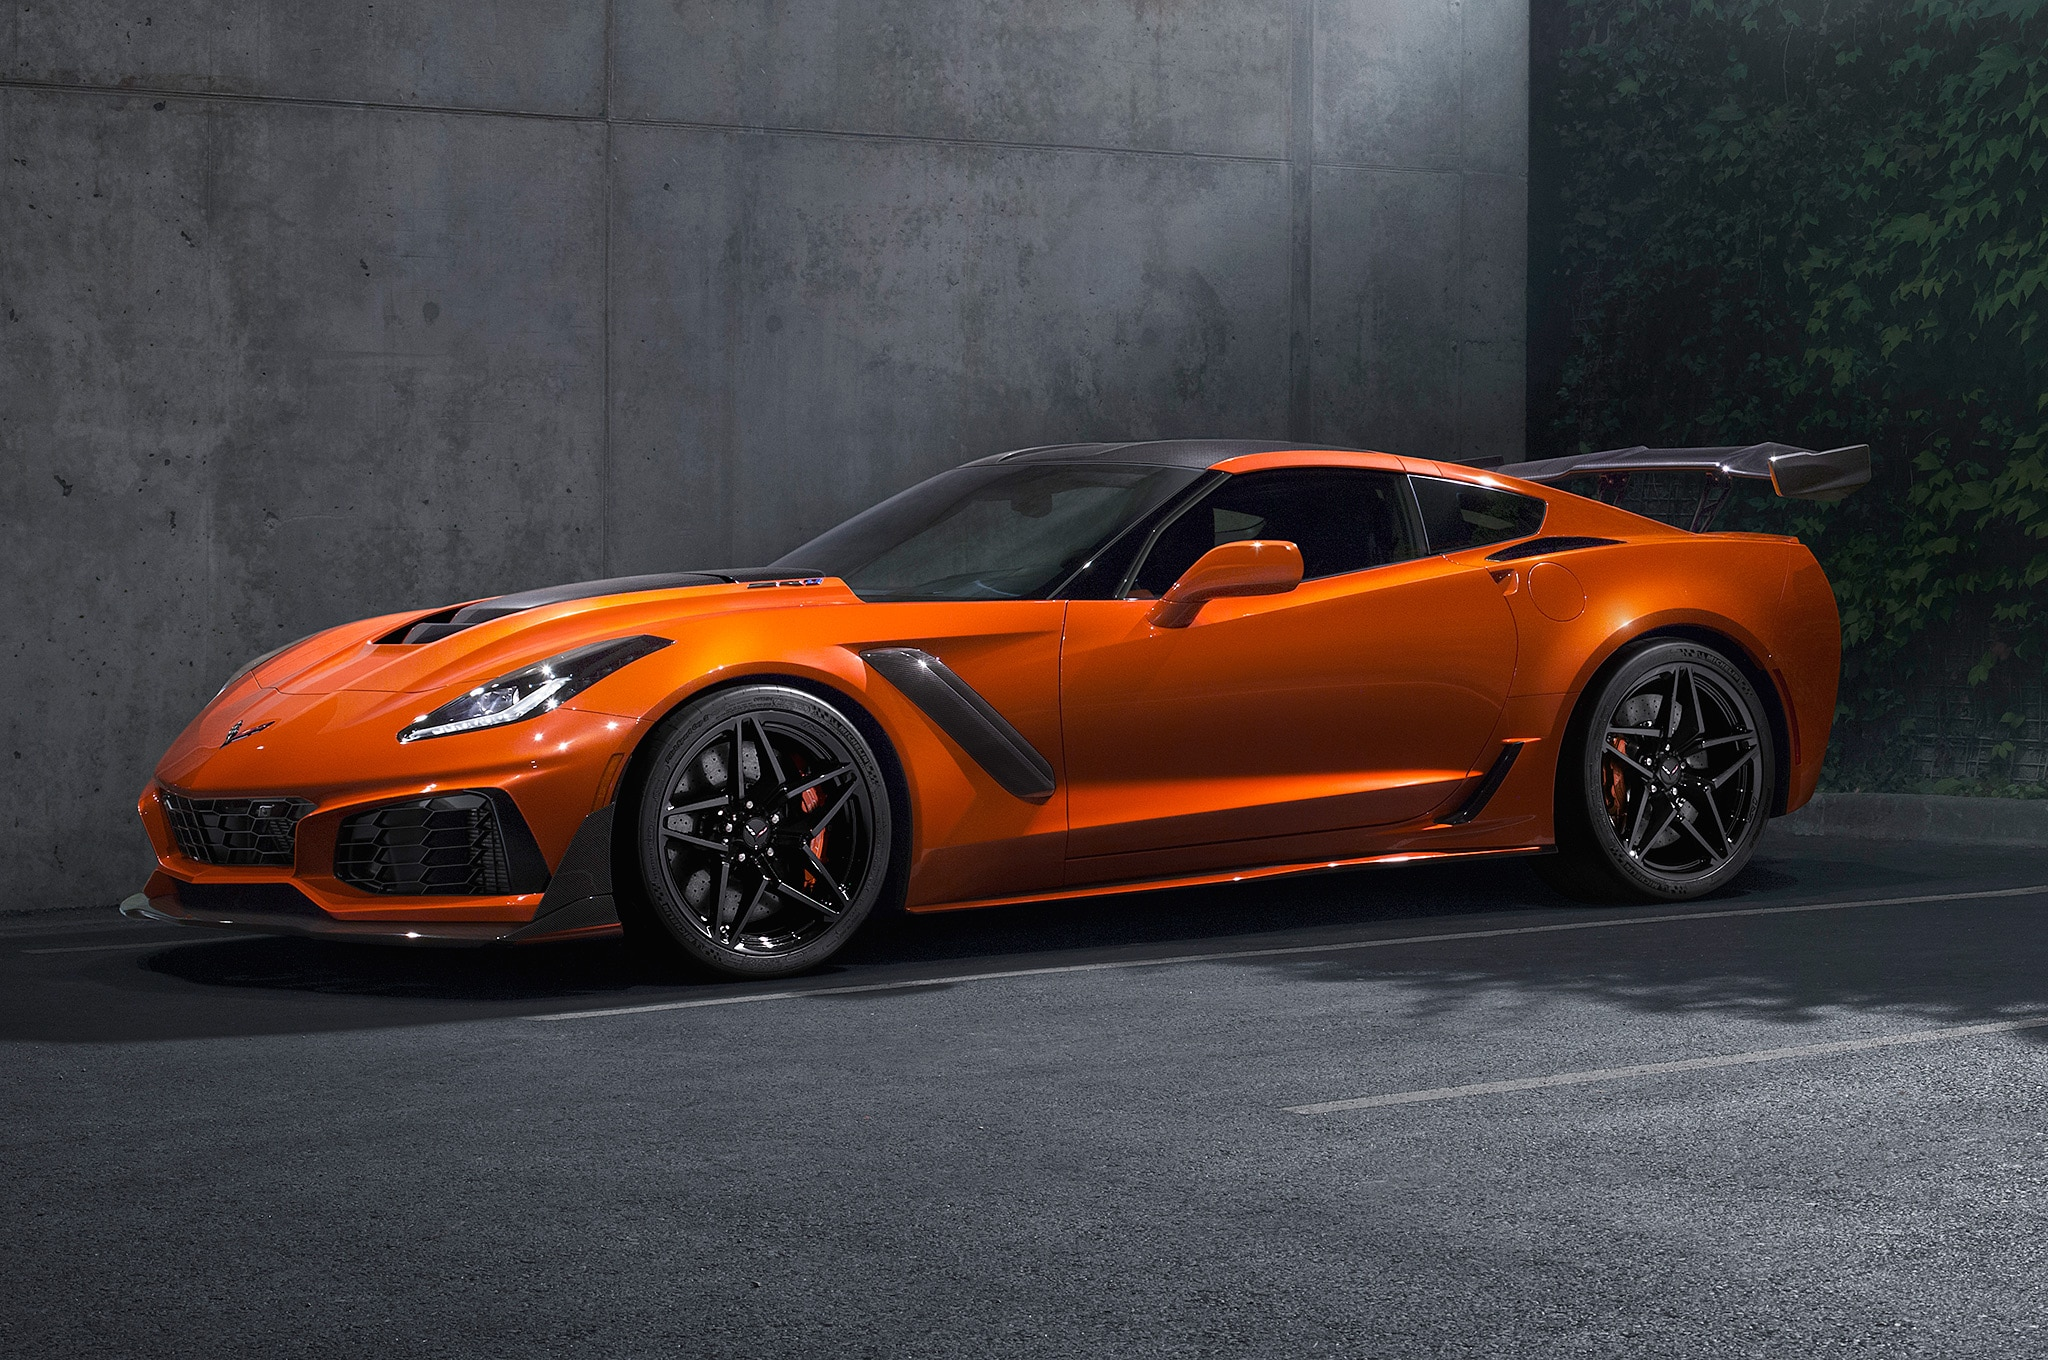 Chevy Corvette ZR1 debuts with 755 horsepower